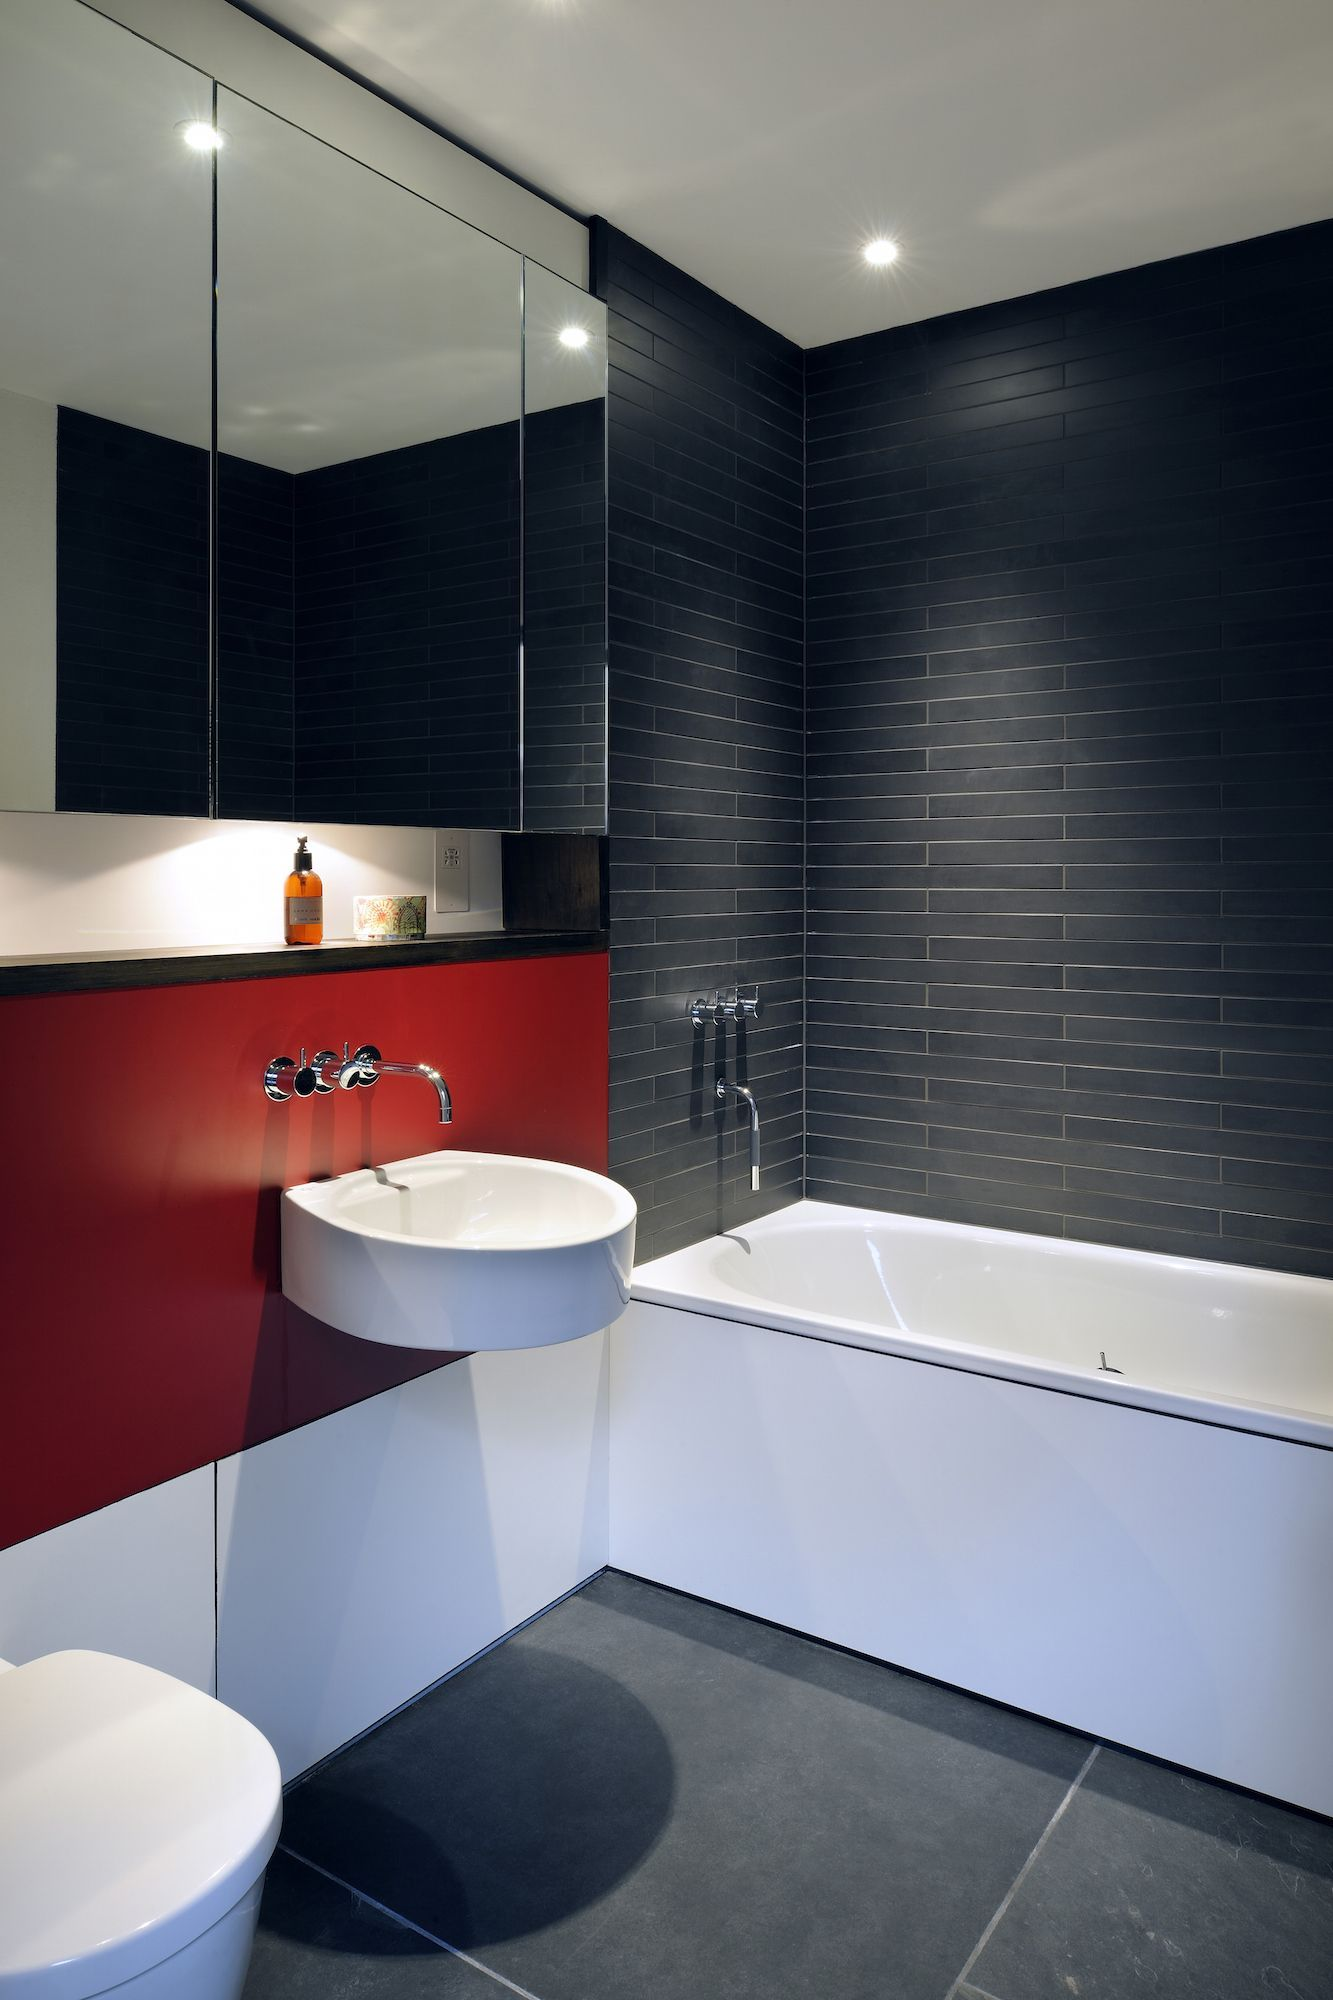 Place long and narrow subway tile in